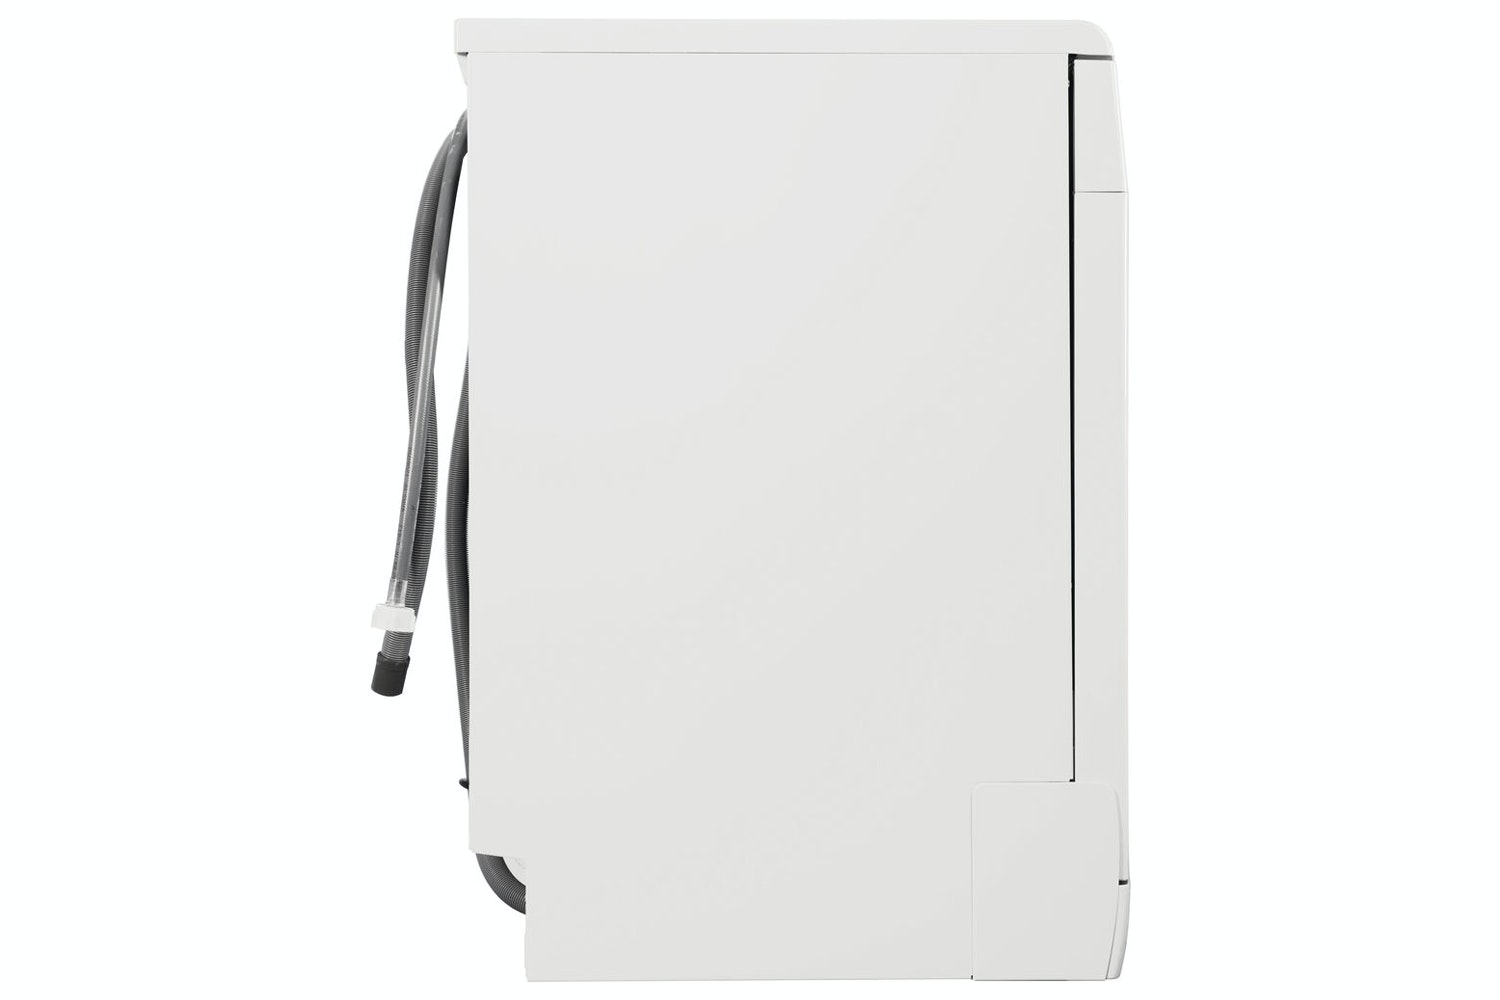 Whirlpool Slimline Dishwasher | 10 Place | ADP301WH